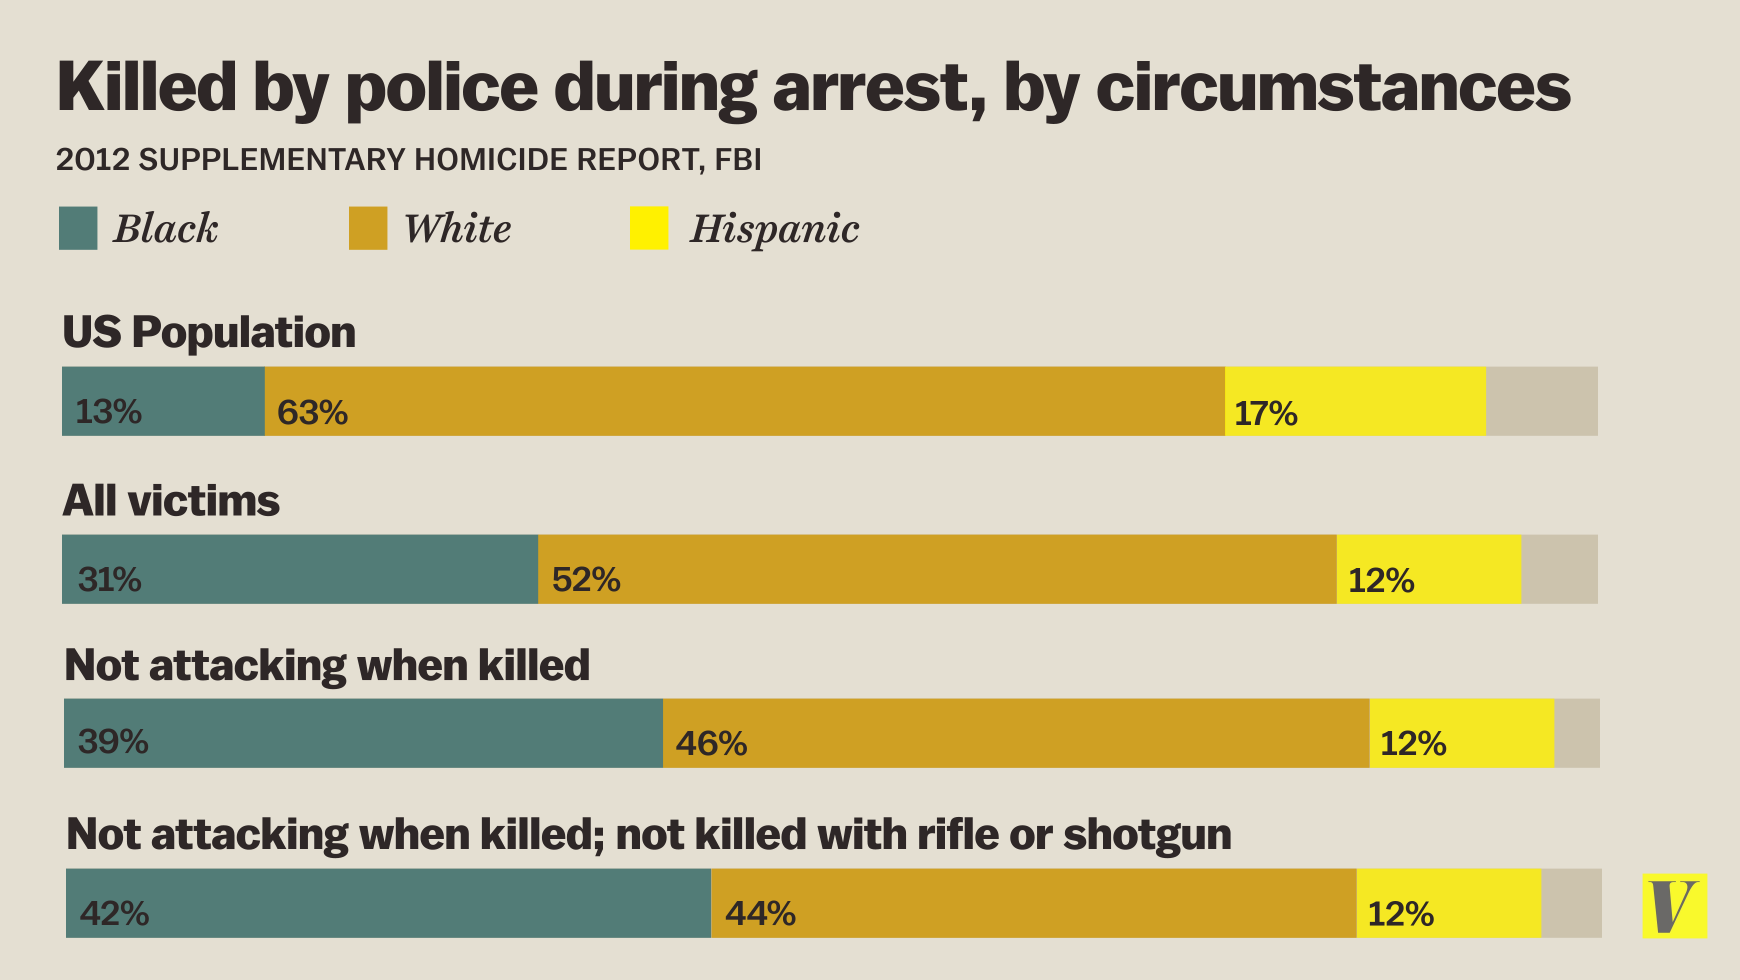 killed by police - circumstances